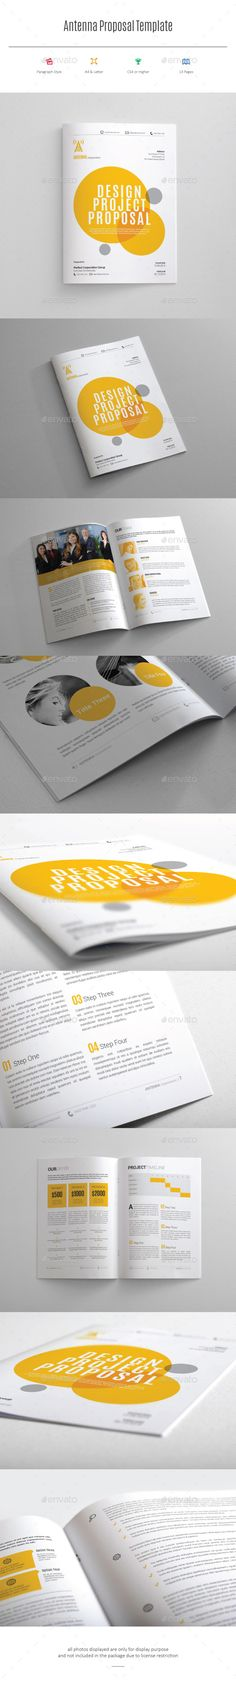 Indesign Proposal Template #design Download: http://graphicriver.net/item/indesign-proposal-template/11012459?ref=ksioks